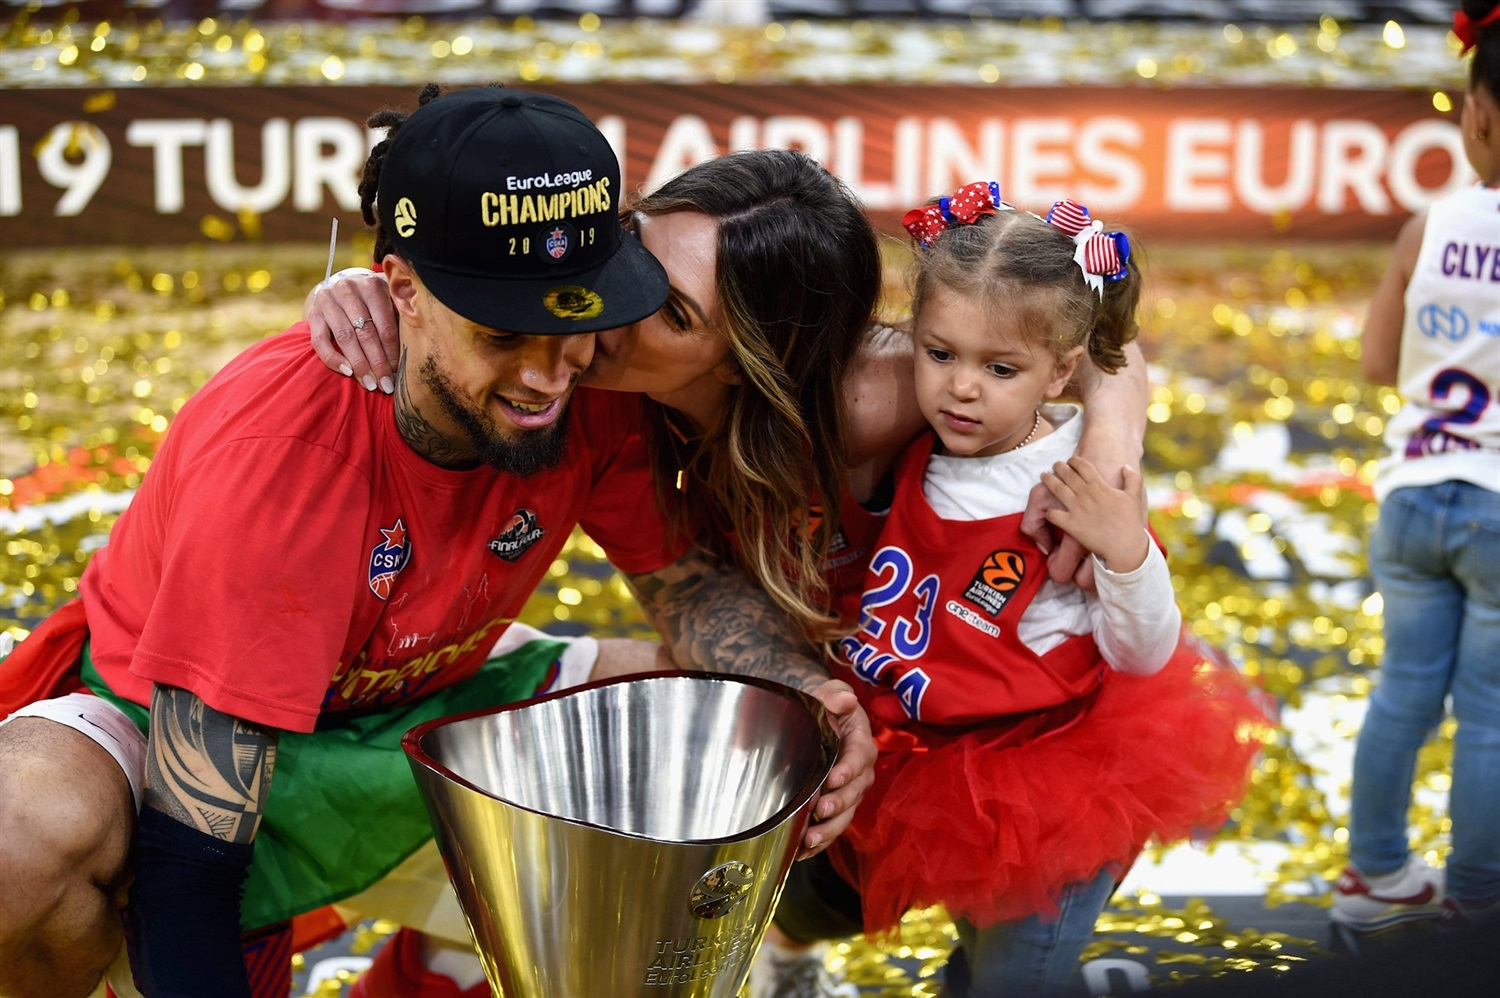 Daniel Hackett family - CSKA Moscow Champ - Final Four Vitoria-Gasteiz 2019 - EB18